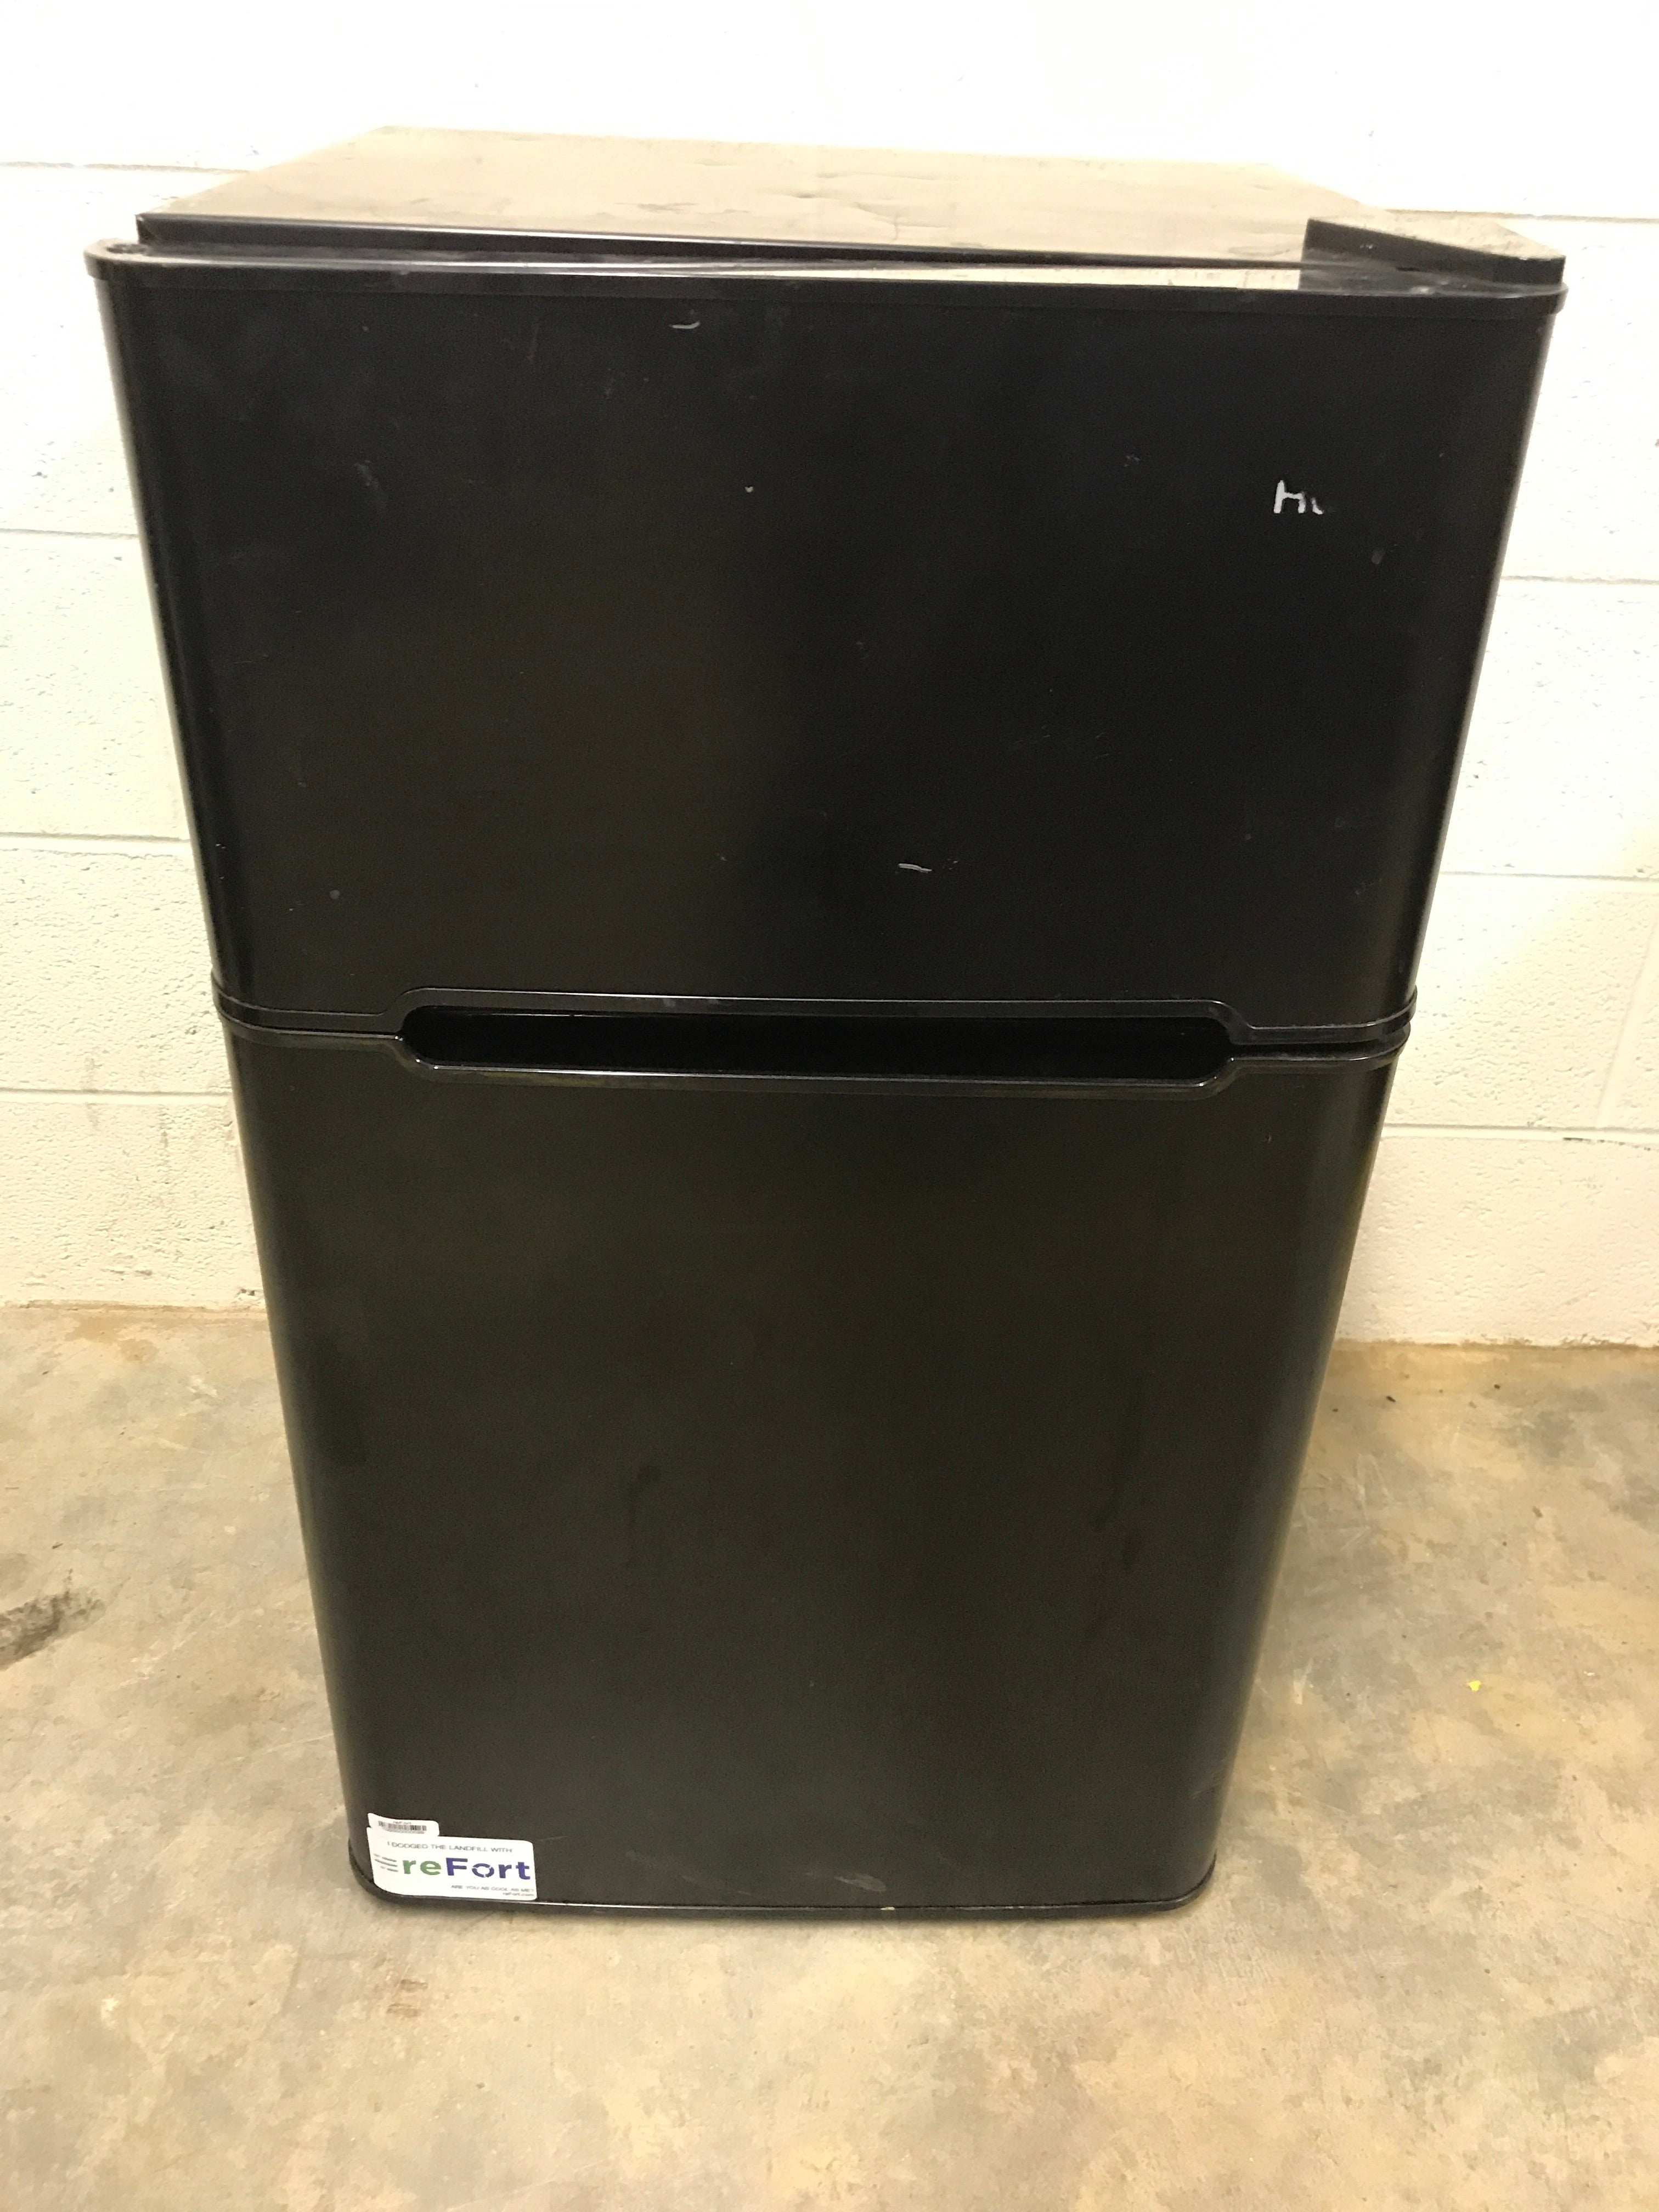 Refurbished Refrigerators - Eco-Friendly Appliance Delivery